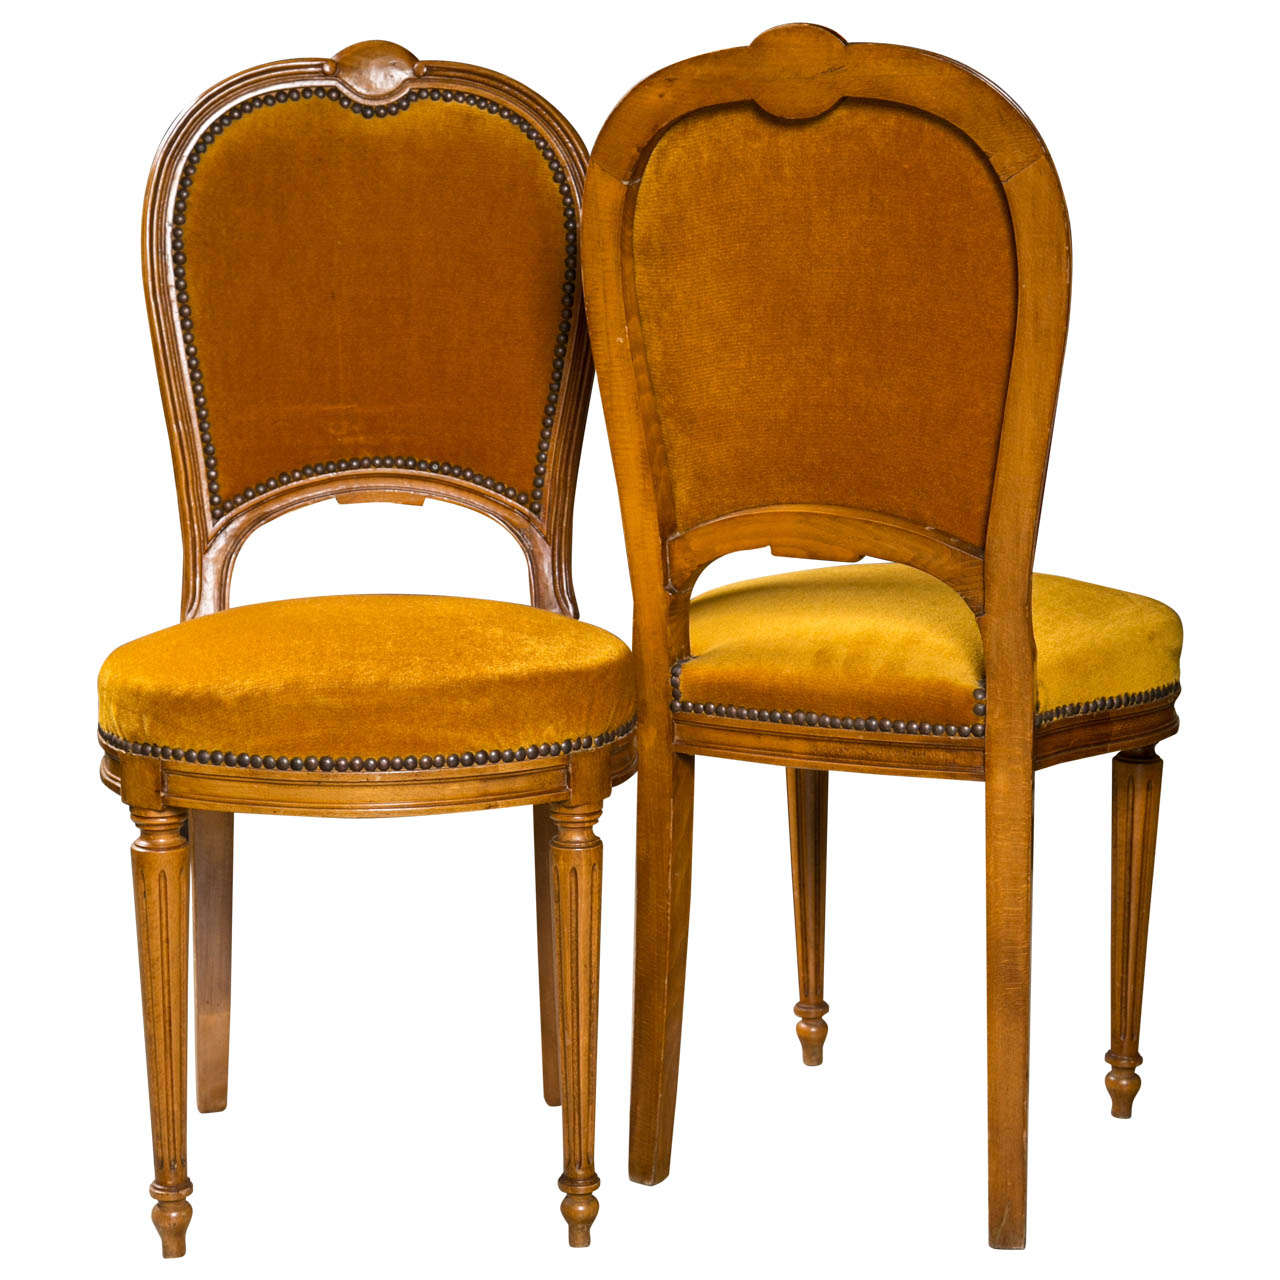 Set of Two Jansen Louis XVI Style Dining Chairs 1Set of Two Jansen Louis XVI Style Dining Chairs For Sale at 1stdibs. Louis Xvi Style Furniture For Sale. Home Design Ideas